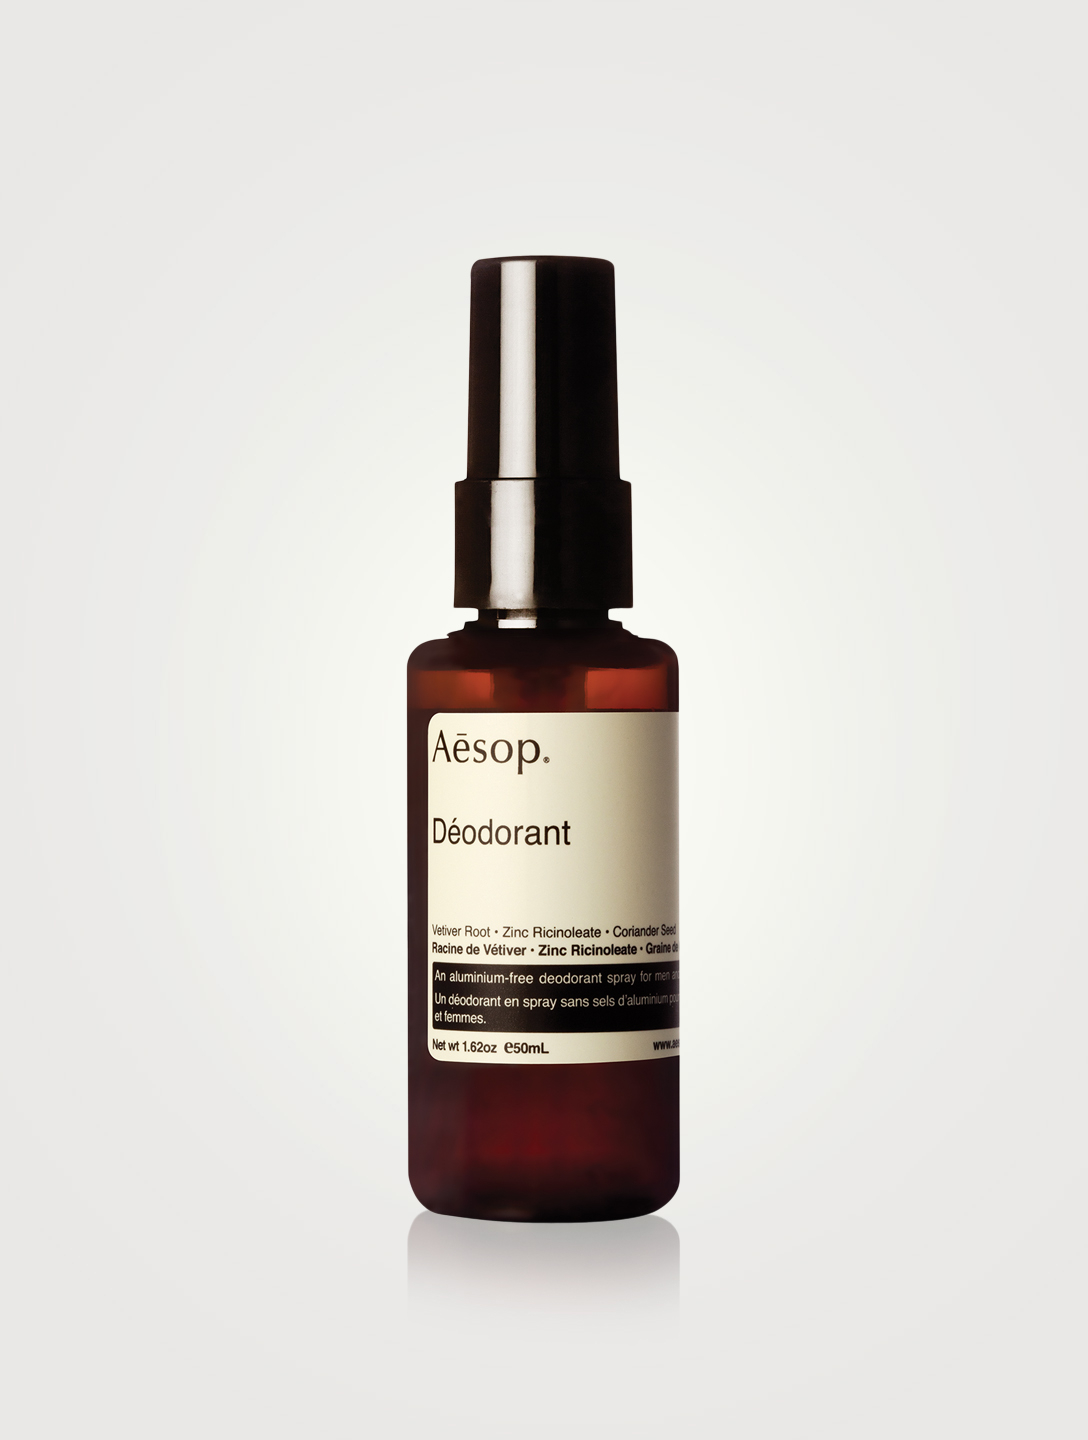 AESOP Deodorant Beauty